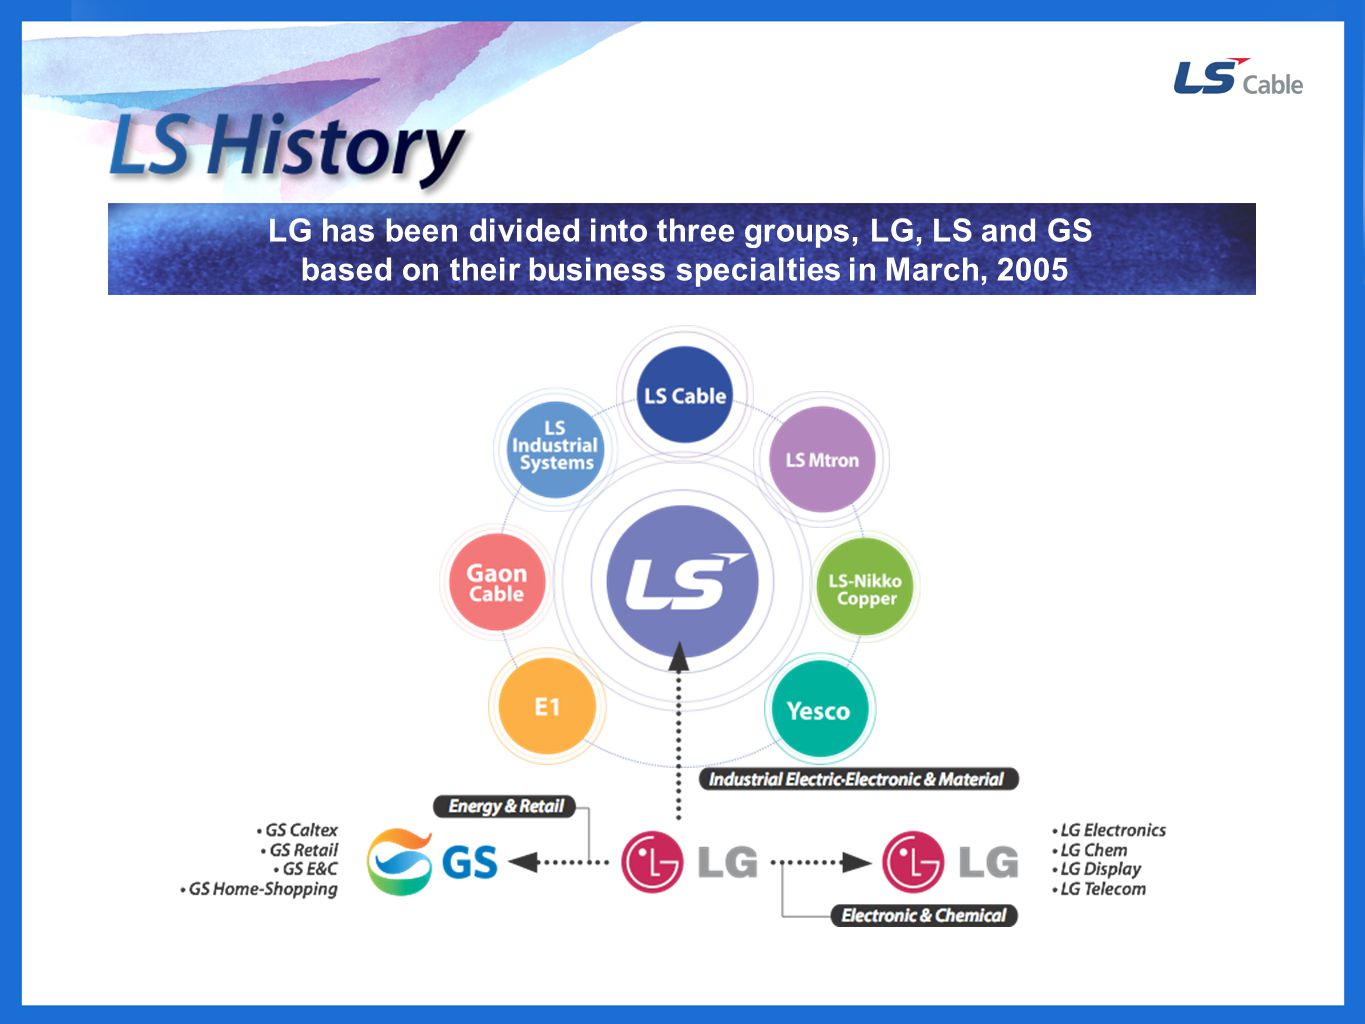 LG has been divided into three groups, LG, LS and GS